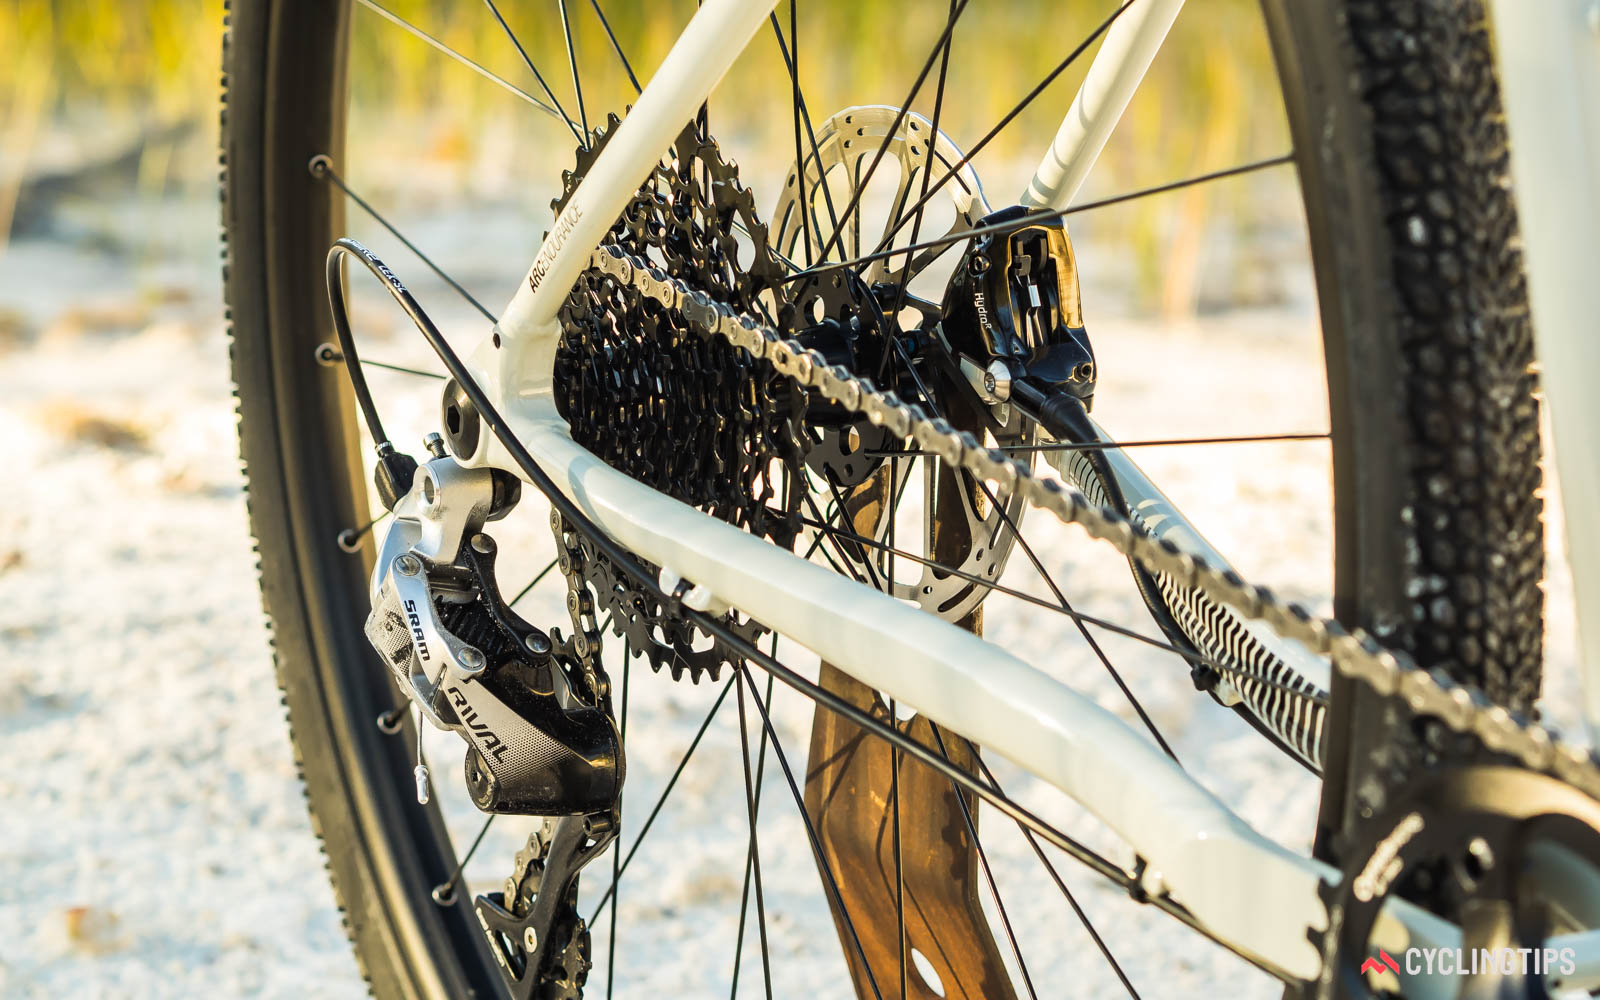 Norco-2018-Search-XR-Steel-Rival-1x-transmission